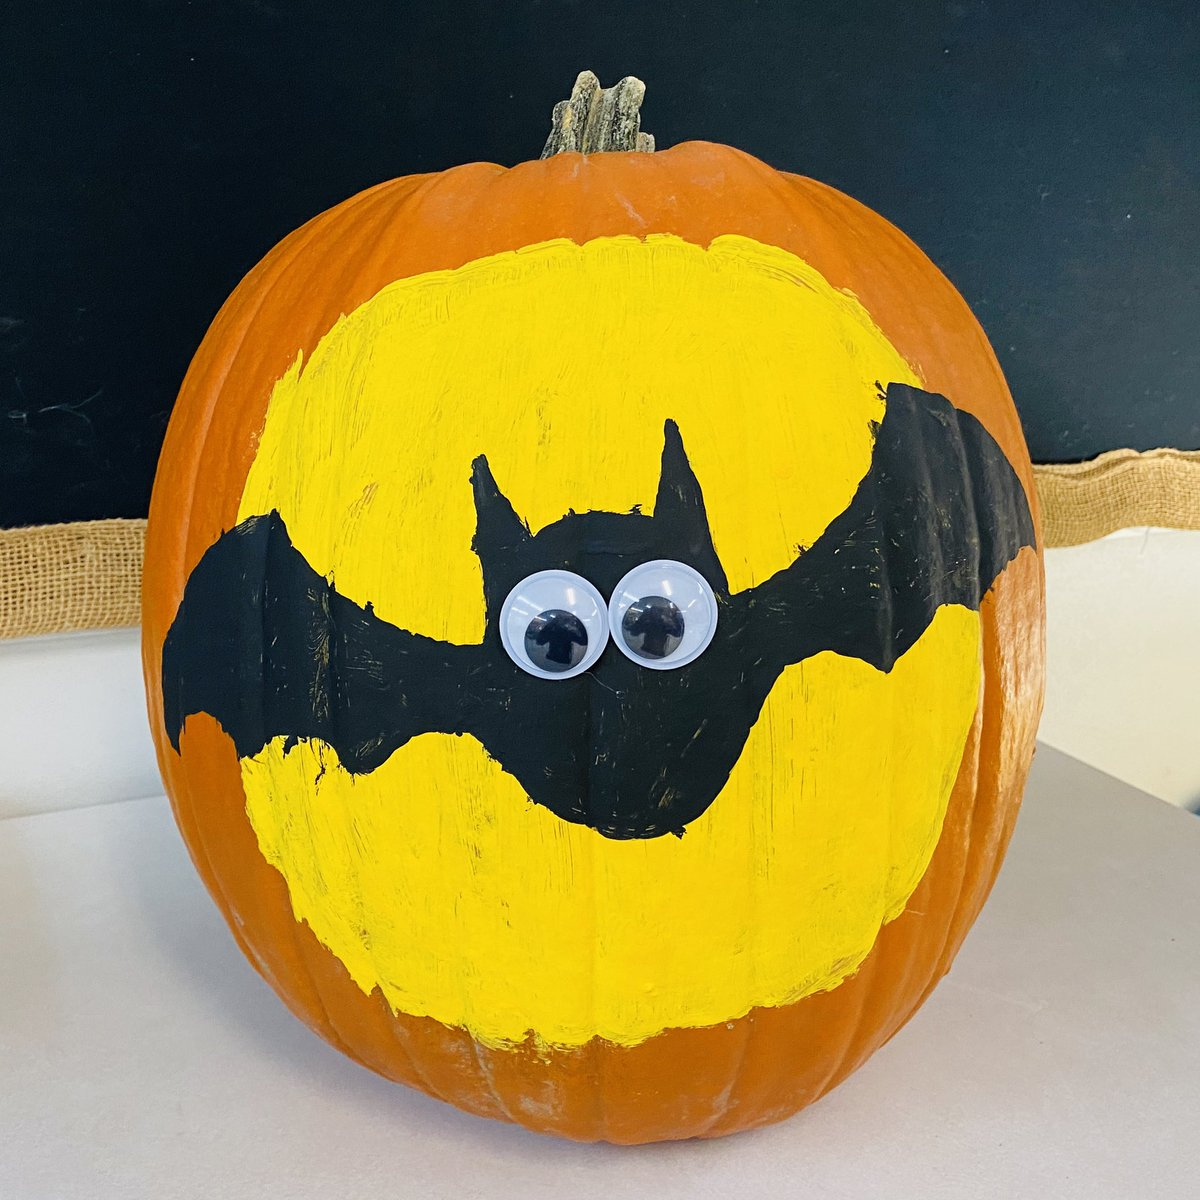 So many great designs to choose from! 🎃 Students voted on their favourite and we turned it into our class submission for the Painted Pumpkin Contest. Well done 2C! 🦇 @StAnneOCSB #spiritweek #pumpkincontest #bat #fullmoon #halloween https://t.co/YlMMb6a564